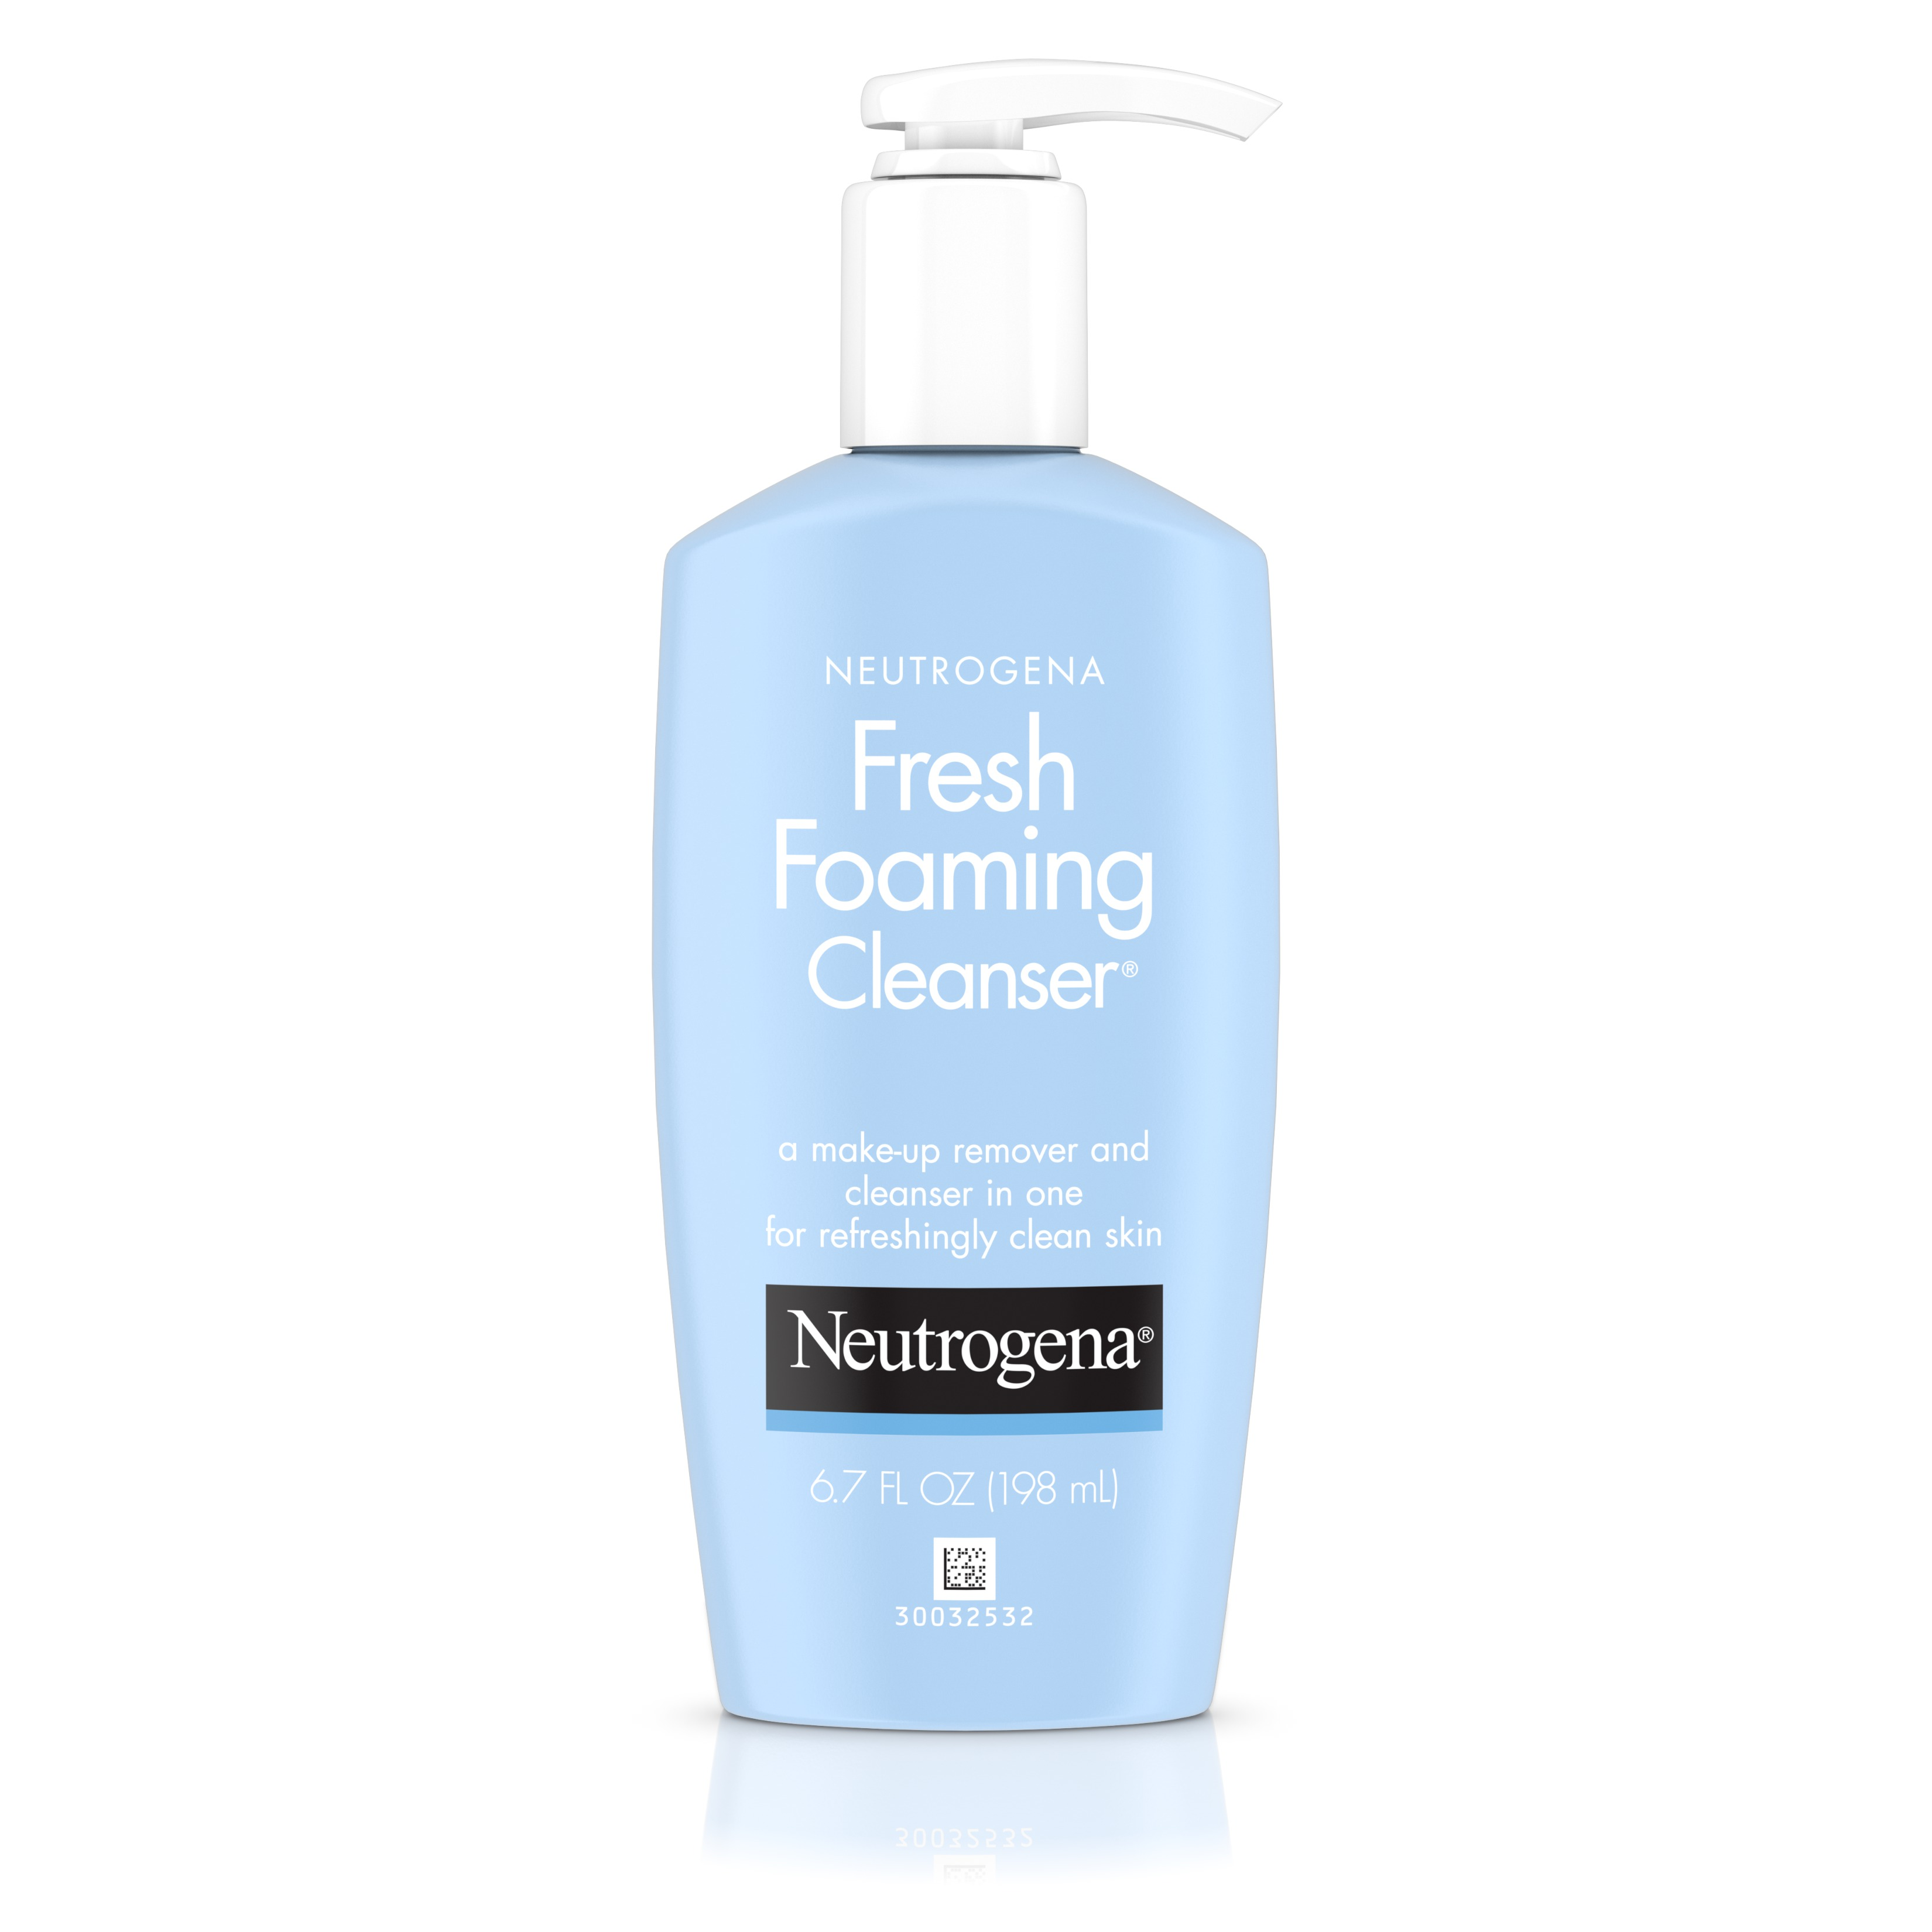 Neutrogena Fresh Foaming Face Cleanser And Makeup Remover, 6.7 Fl. Oz.